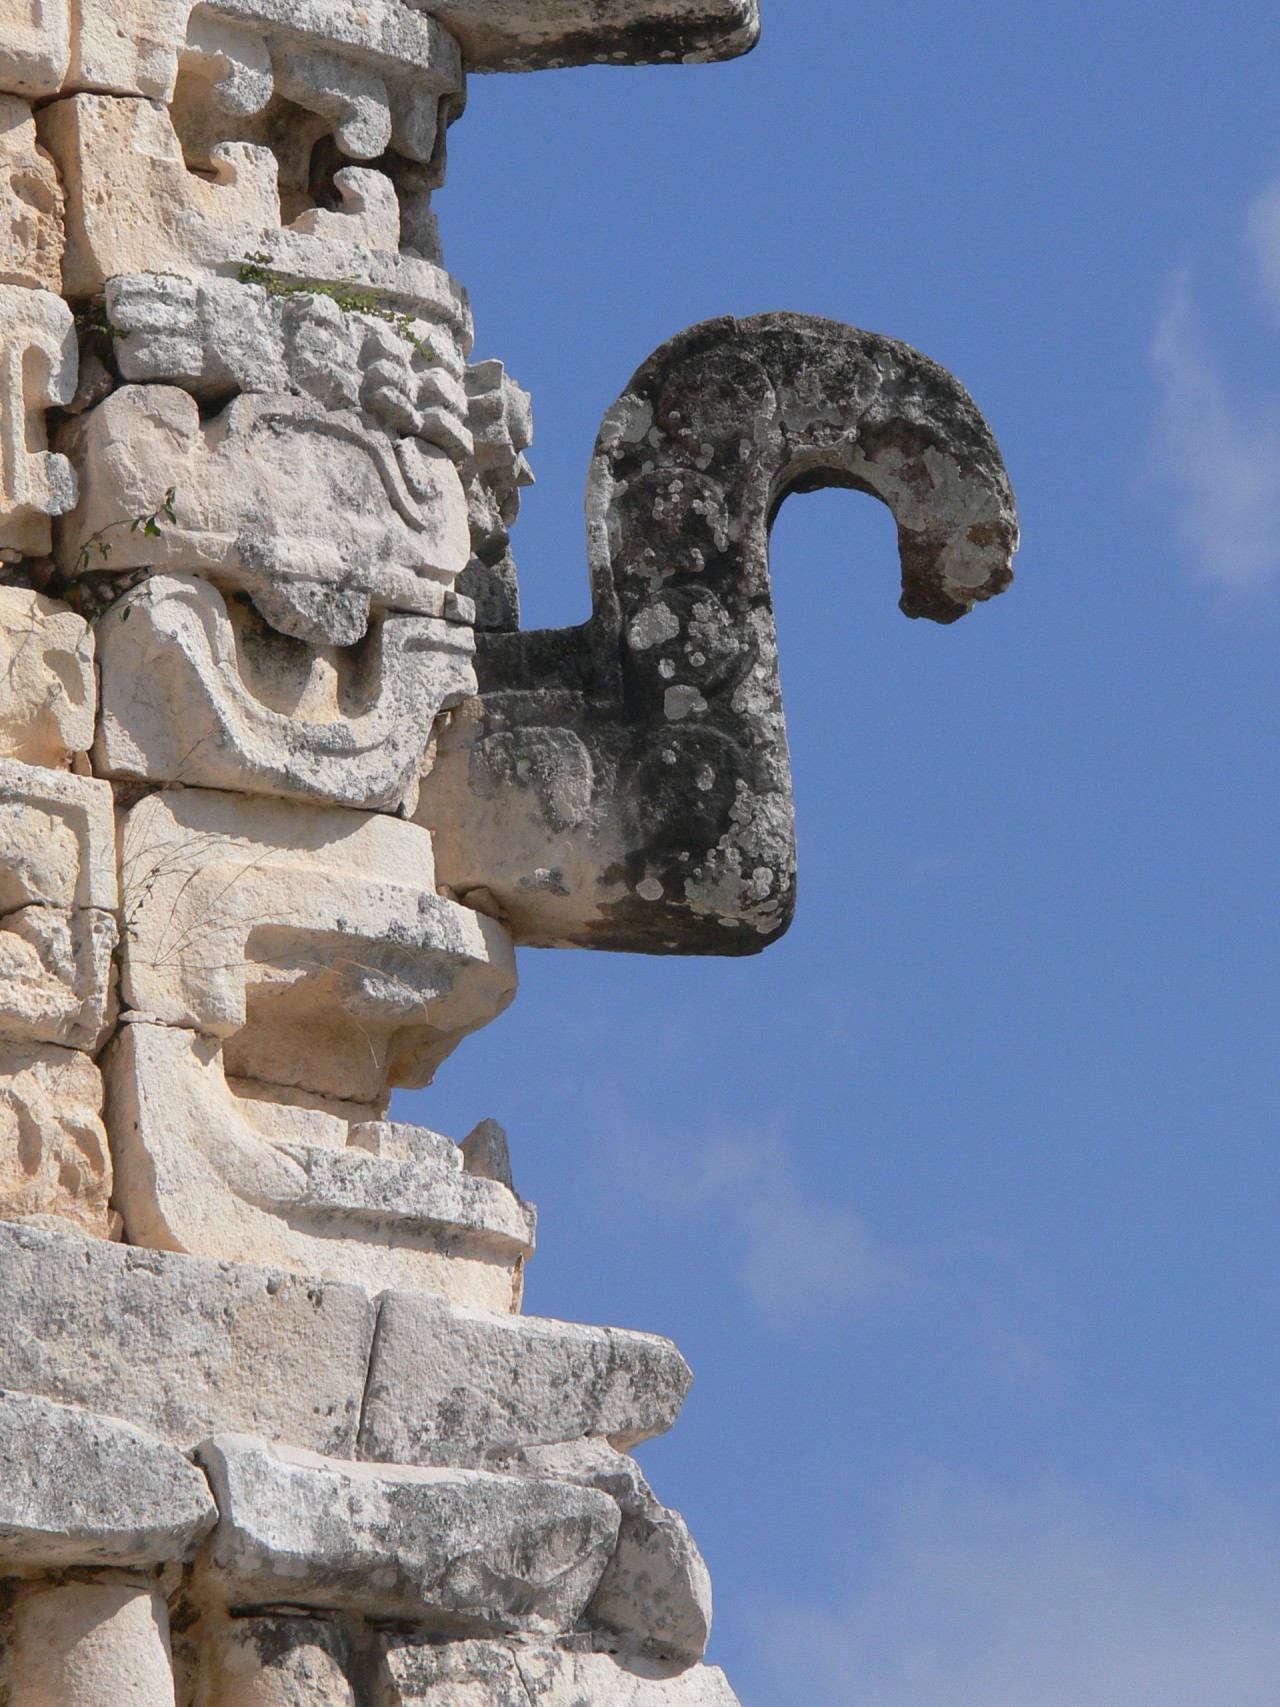 Chac (Mayan rain deity) as shown on the Eastern palace from the mayan archaeological site of Uxmal, Yucatán, Mexico. Photo courtesy & taken by Wolfgang Sauber